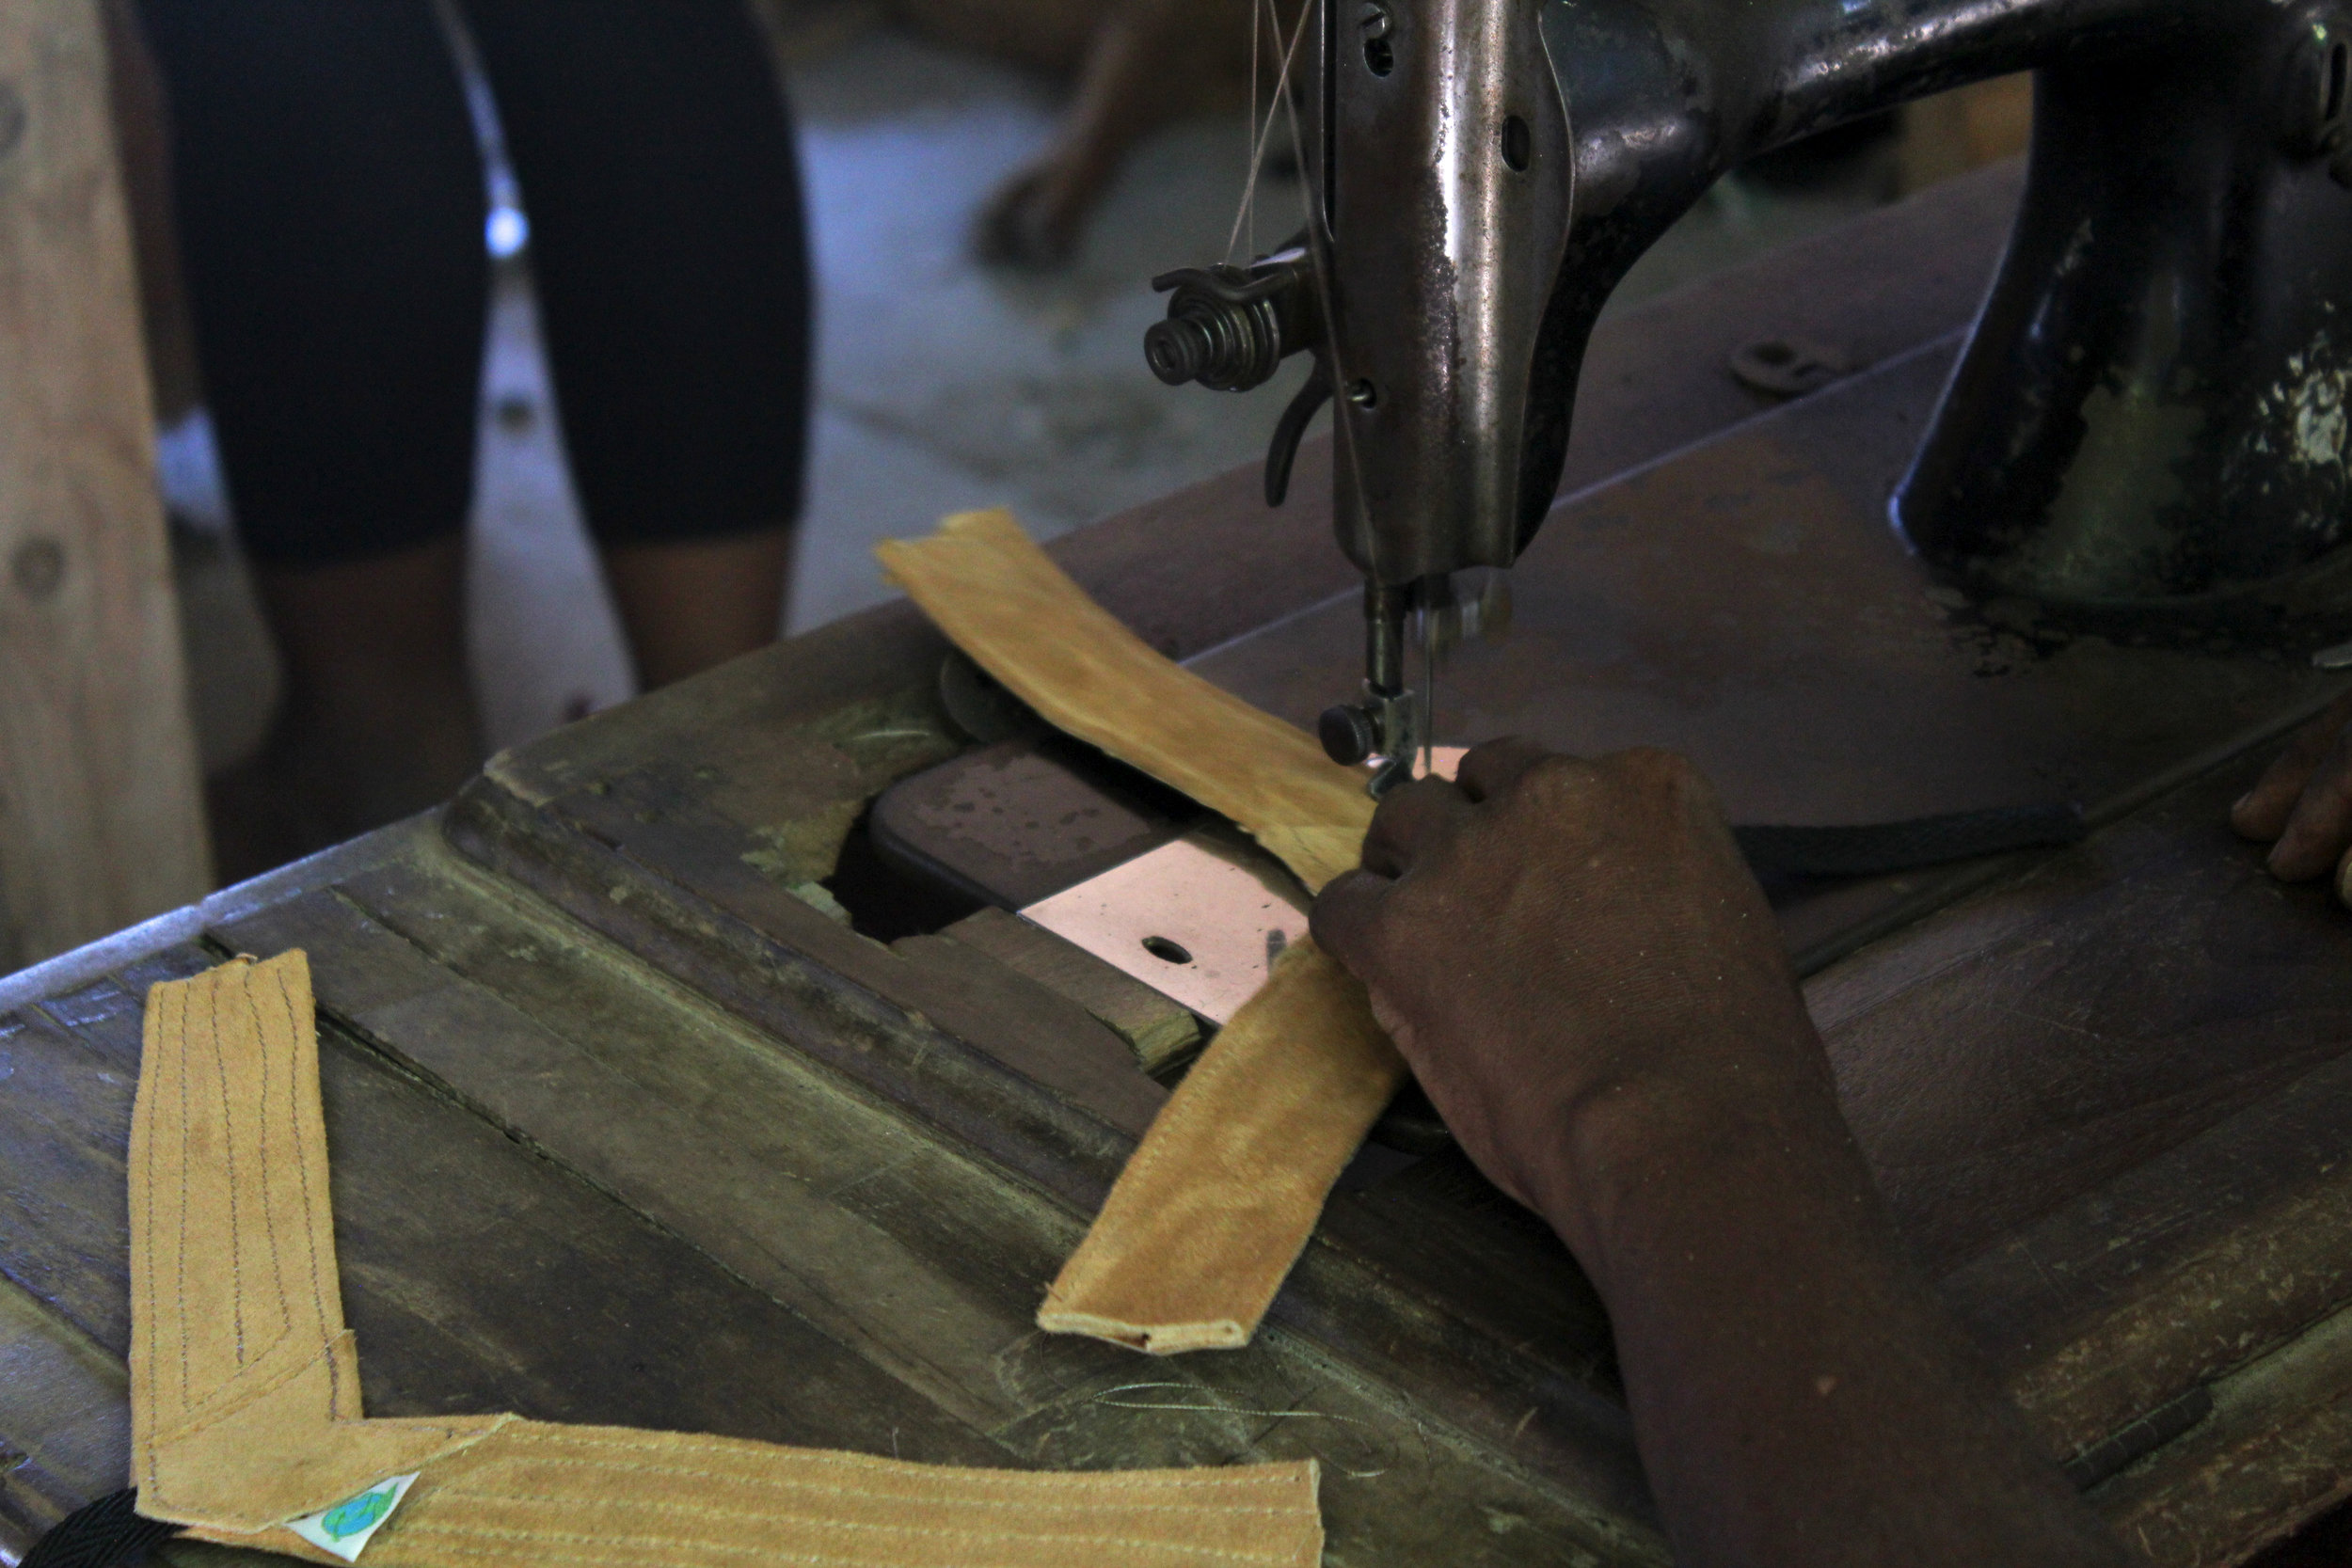 The reclaimed leather foot straps are being sewn and reinforced. Photo: A Bergamin